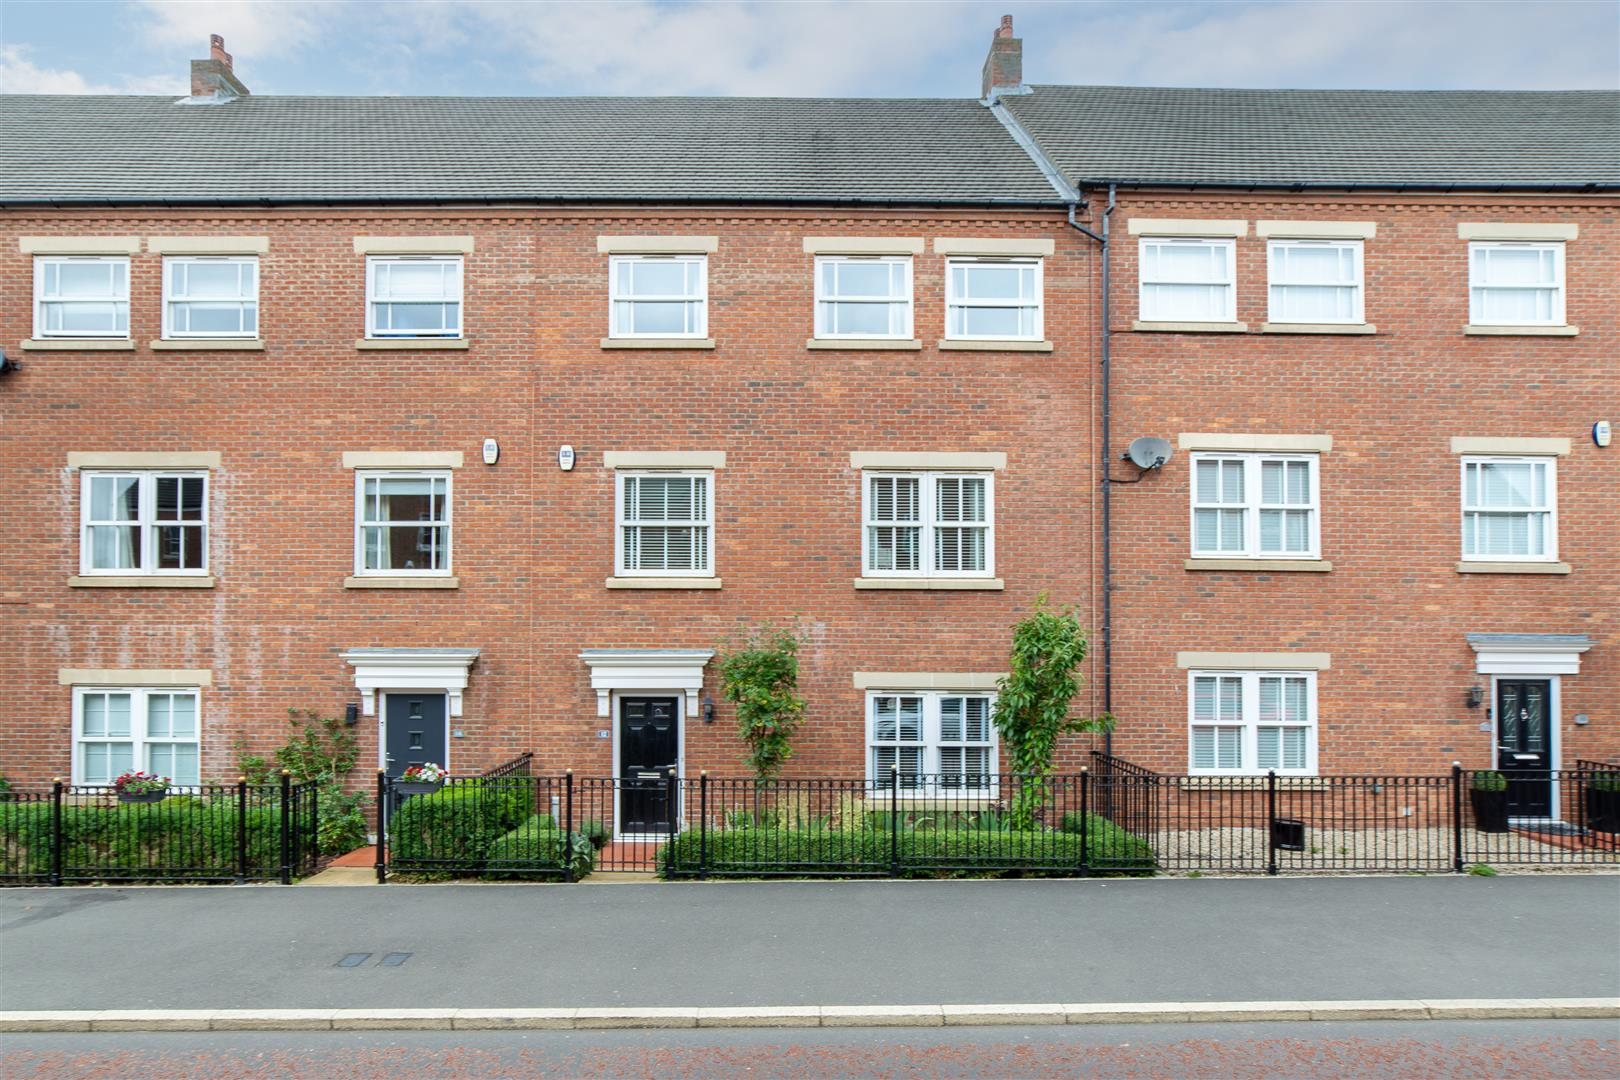 6 bed town house for sale in Featherstone Grove, Newcastle Upon Tyne, NE3